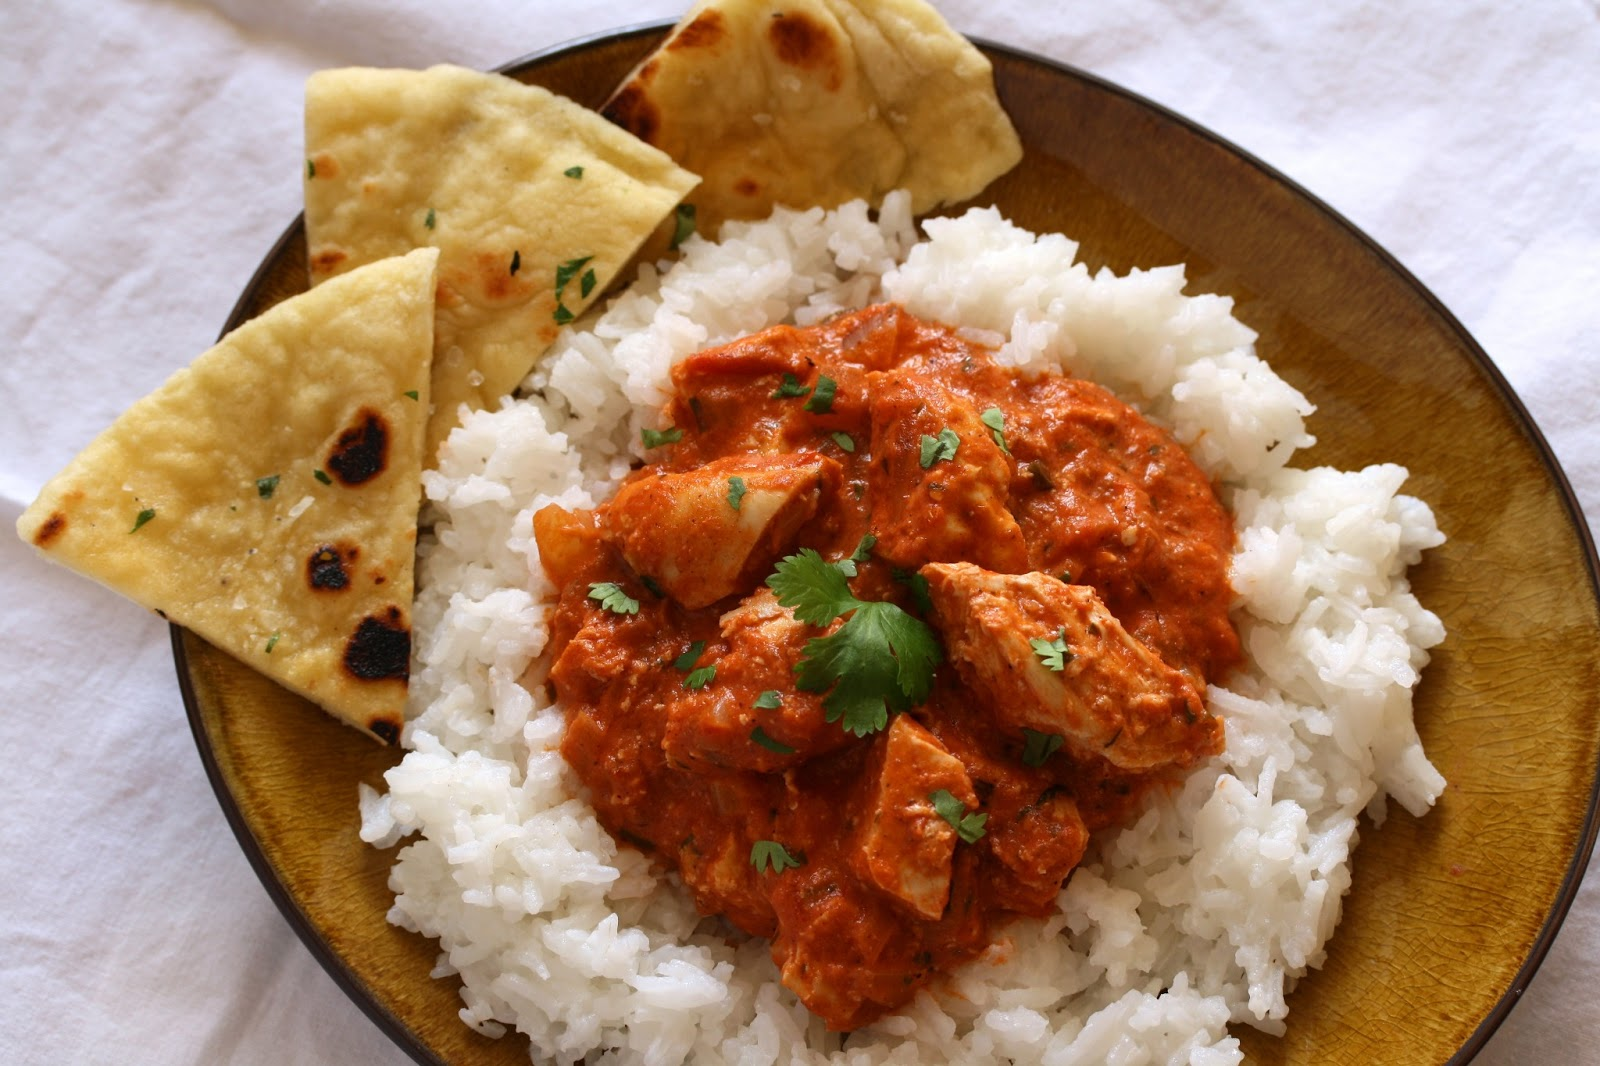 Served with homemade naan bread – recipe coming later this week!